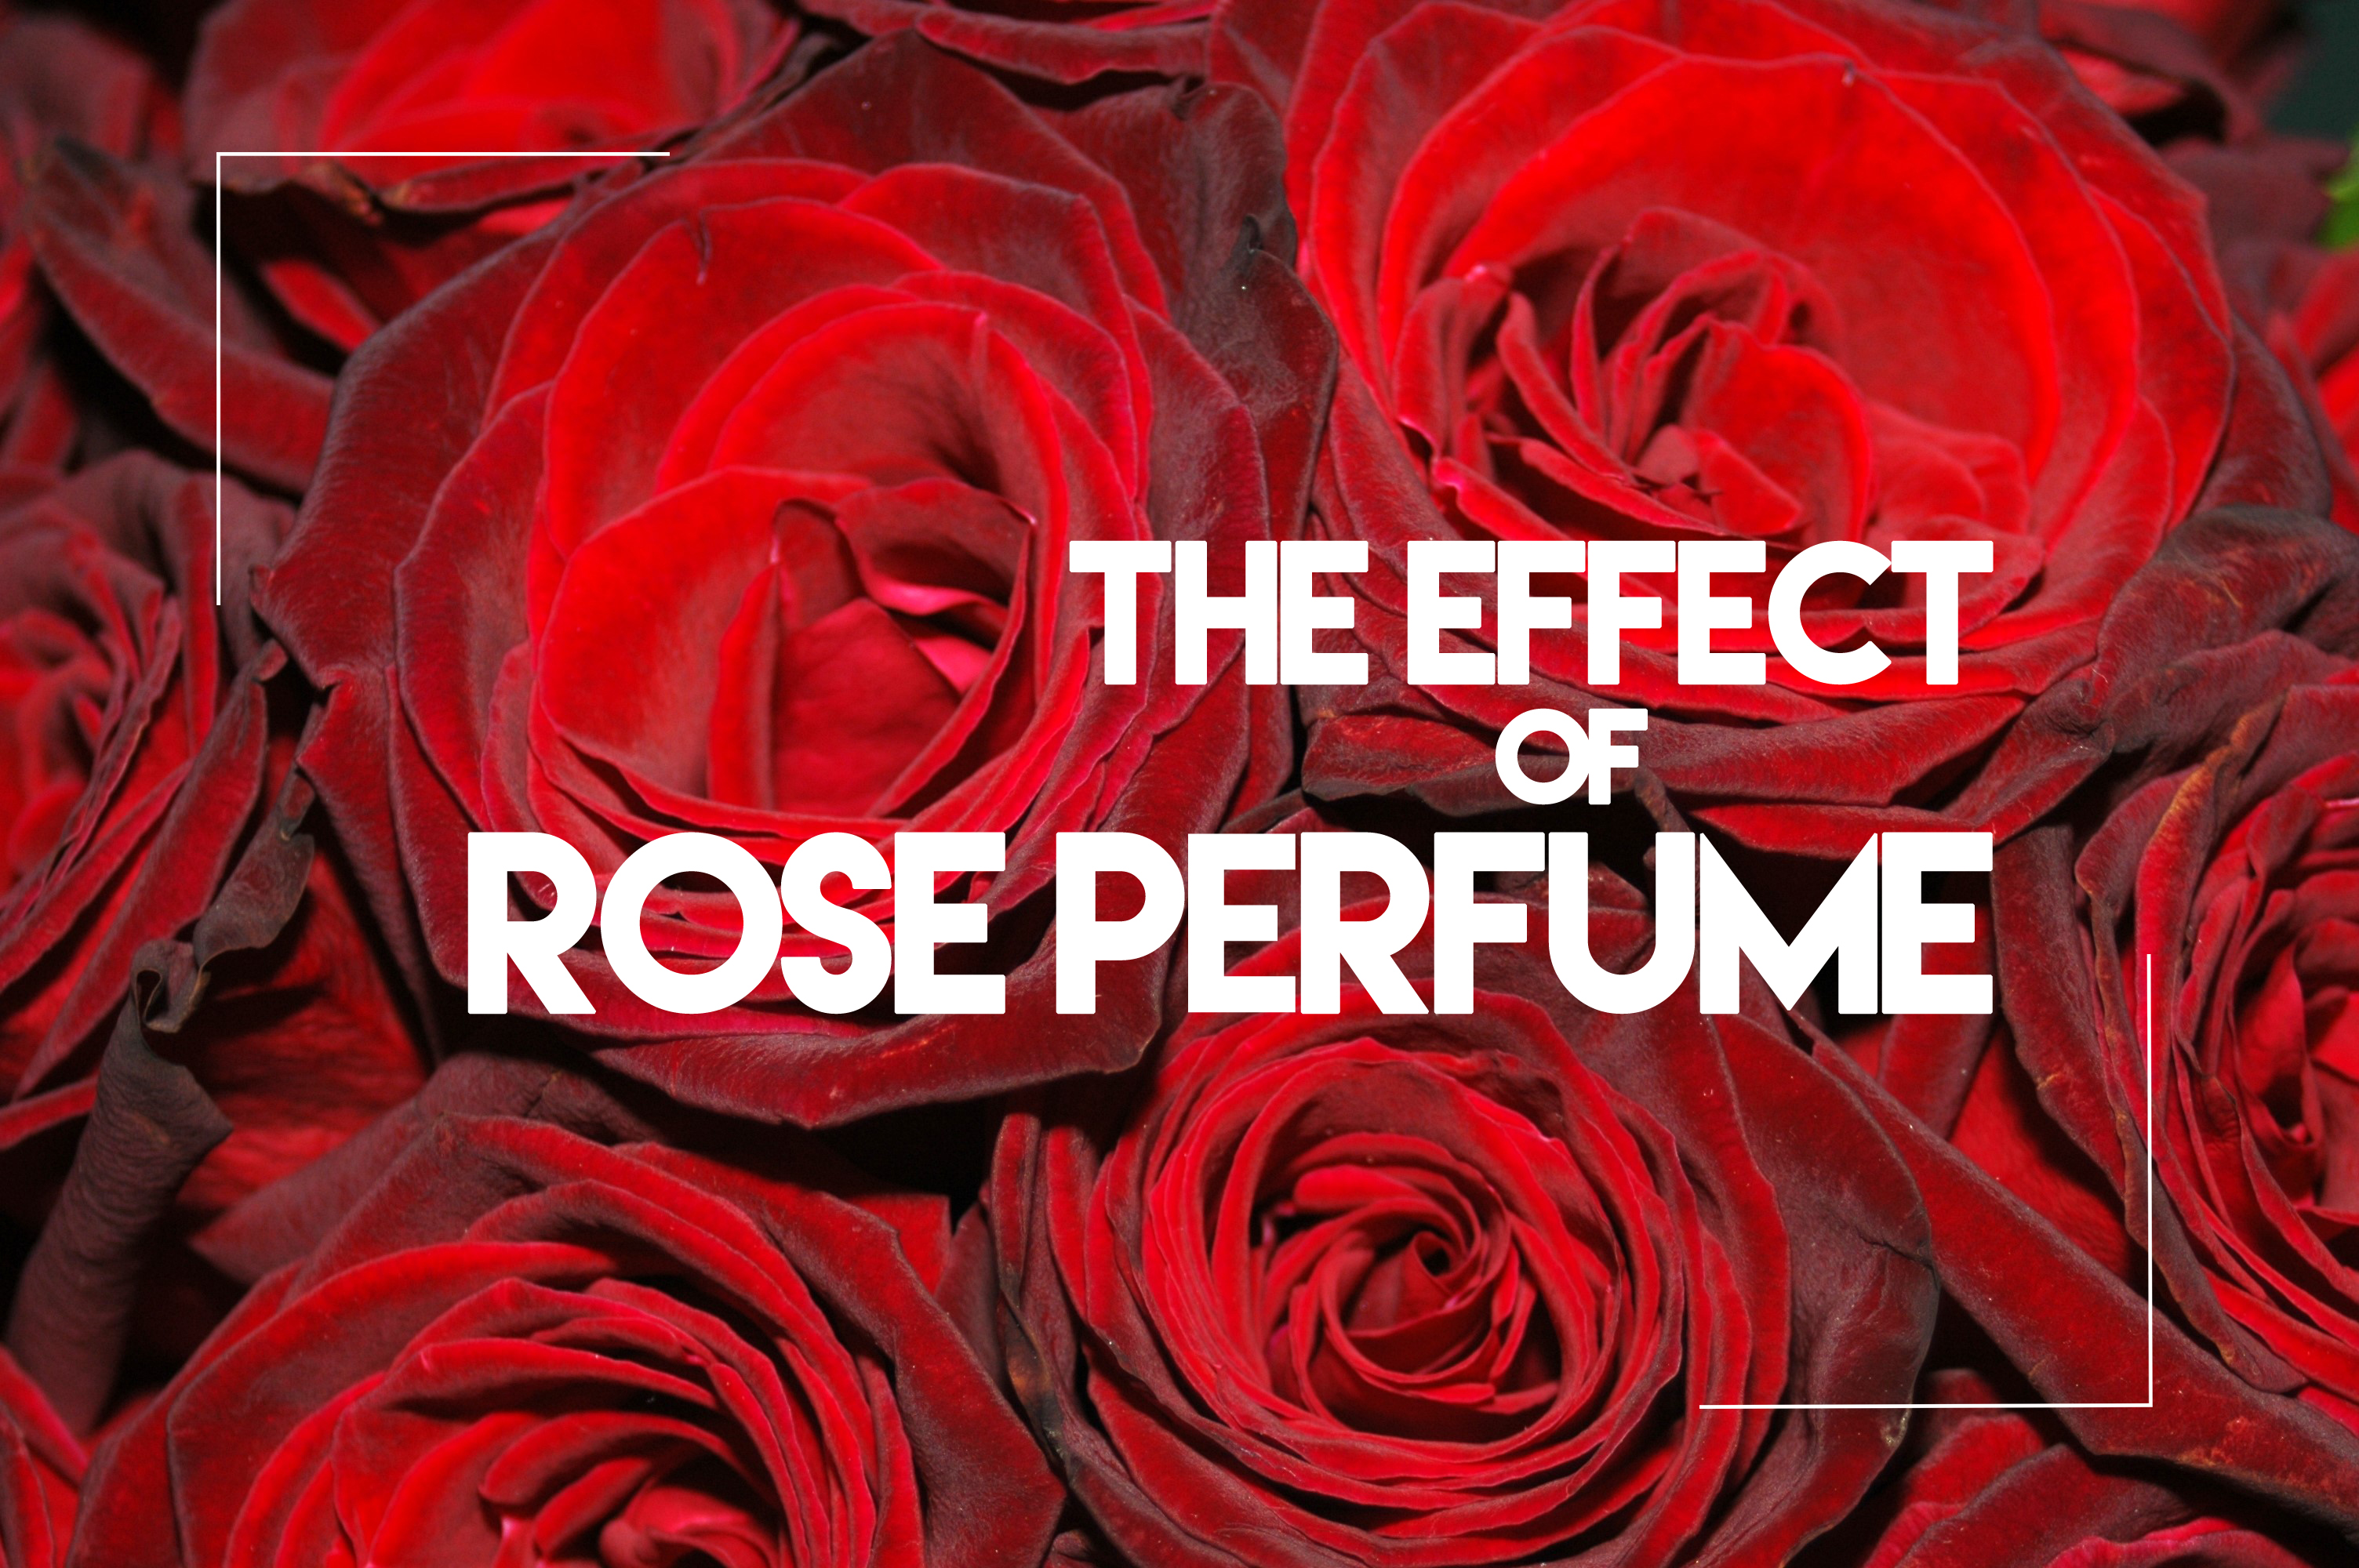 The effect of that sweet rose perfume